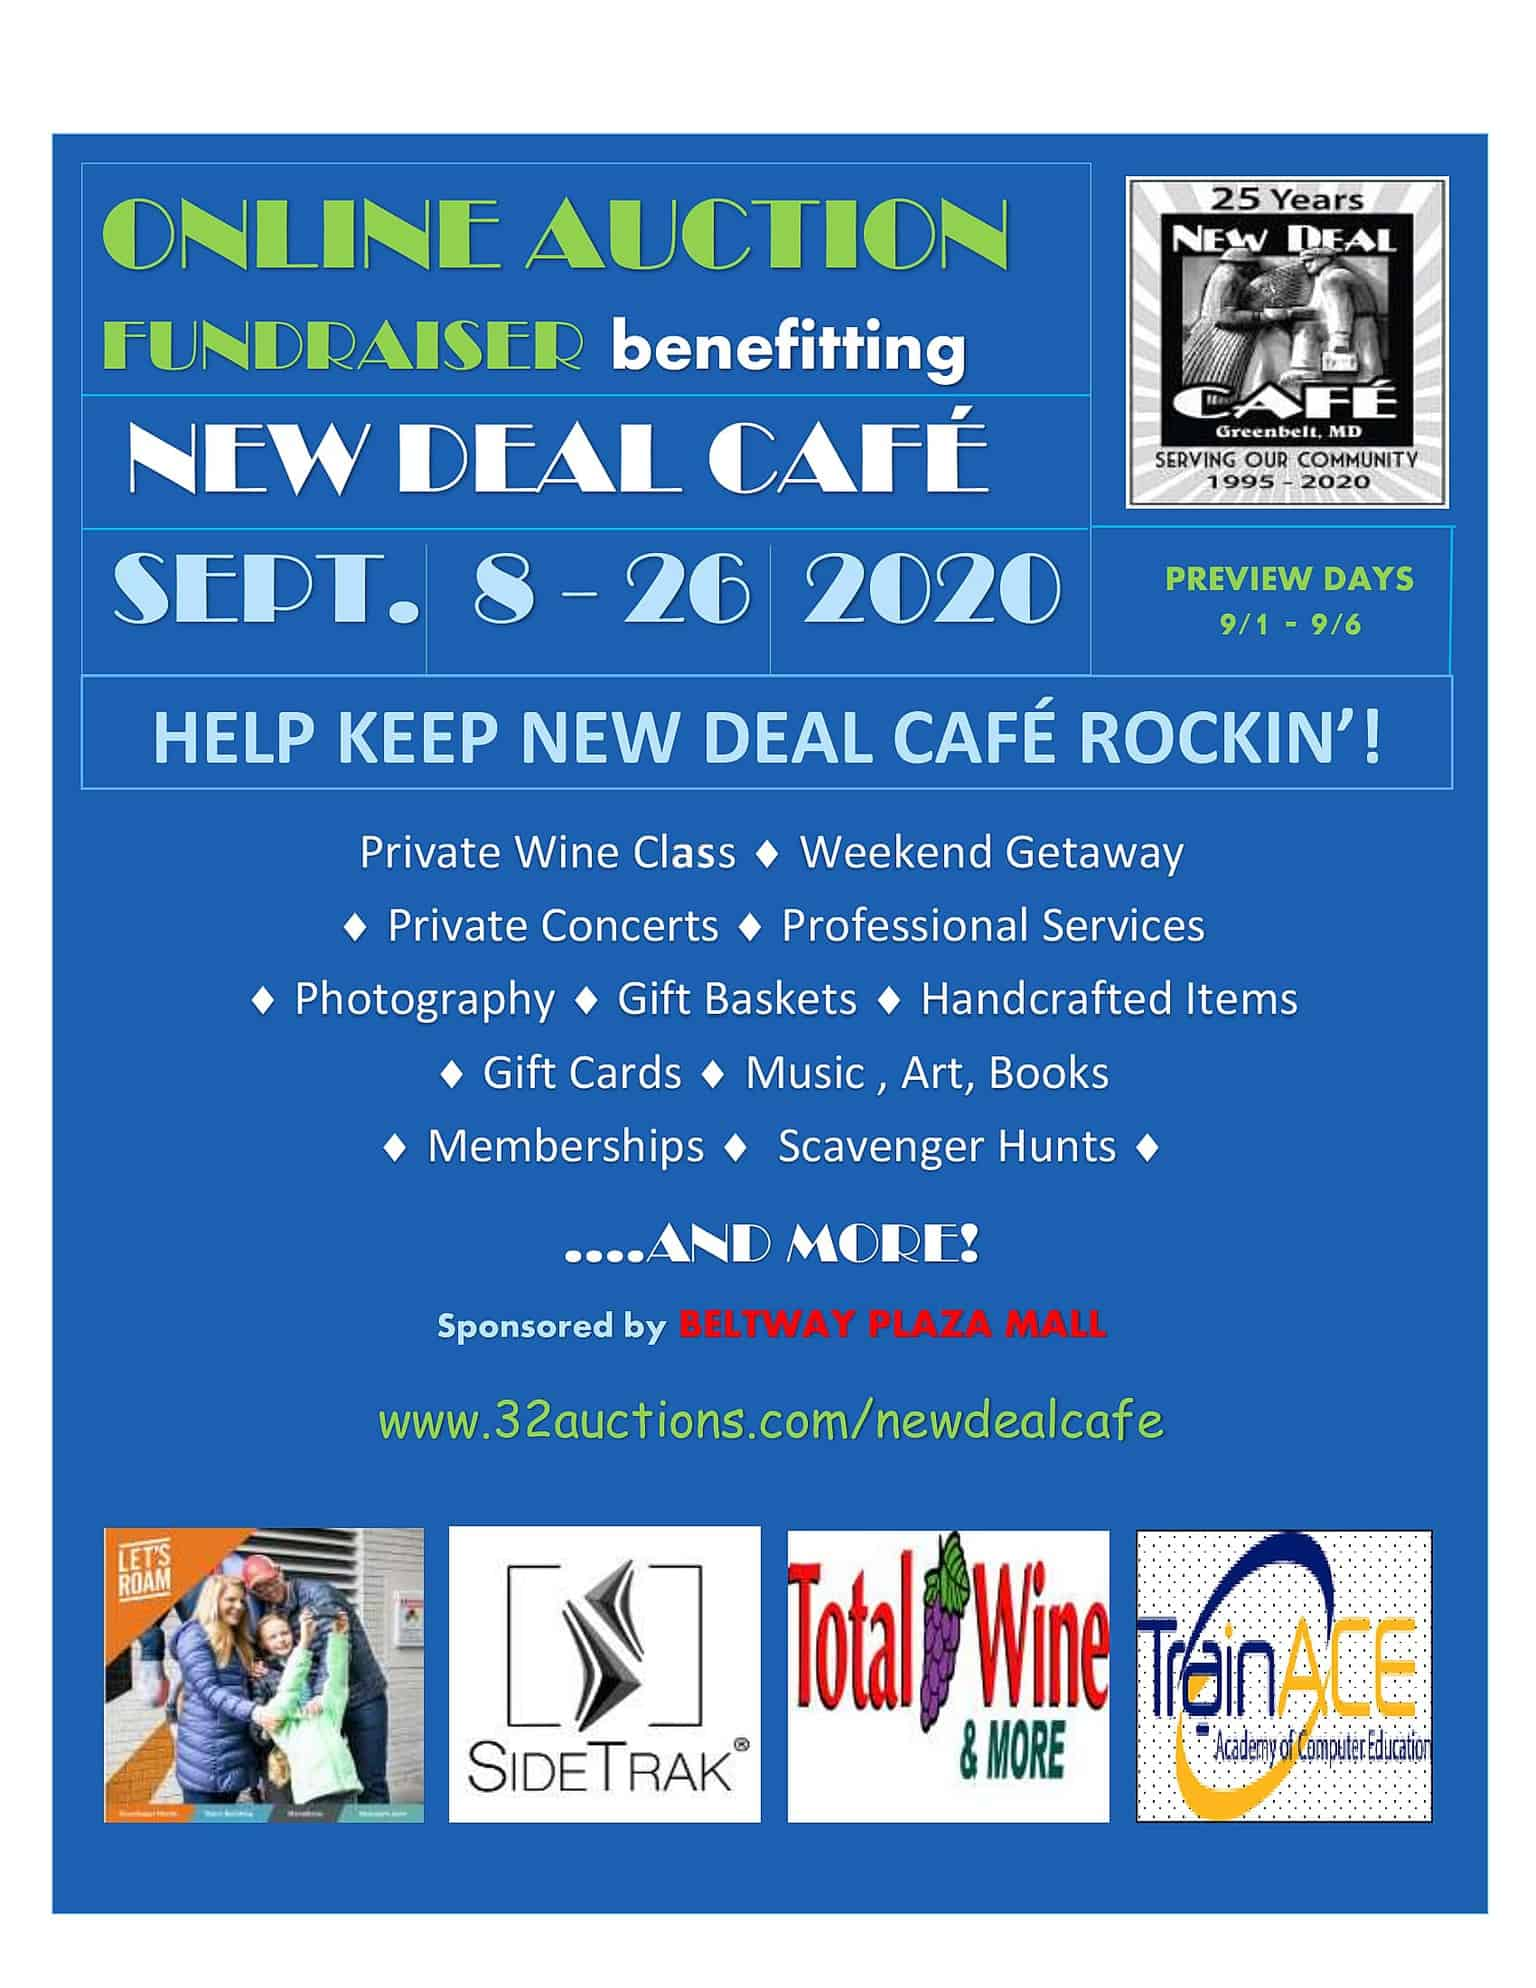 New Deal Cafe Fundraising Auction - <p>The New Deal Cafe is a community supported; member owned Cooperative. They have been hit particularly hard by the closing of the music venue on March 17th. Like so many other small businesses, they are pursuing many resources to stay viable until they can bring back live local music. This fundraiser is our way of supporting New Deal during this unprecedented time. If you have ever been to New Deal Cafe (and we know many of you have), you know that there is never a cover charge, only donations to pay the musicians. Yet, the musicians keep coming back and many have offered items for the auction like music lessons or private concerts in your backyard. We have so many amazing and eclectic items up for auction and we hope that you will all check out the preview from 9/1 - 9/5 at: www.32auctions.com/newdealcafe. We know you will be back to bid on something you just cannot live without. Every dollar raised goes to the New Deal Cafe so we can keep it rockin' for years to come.</p>